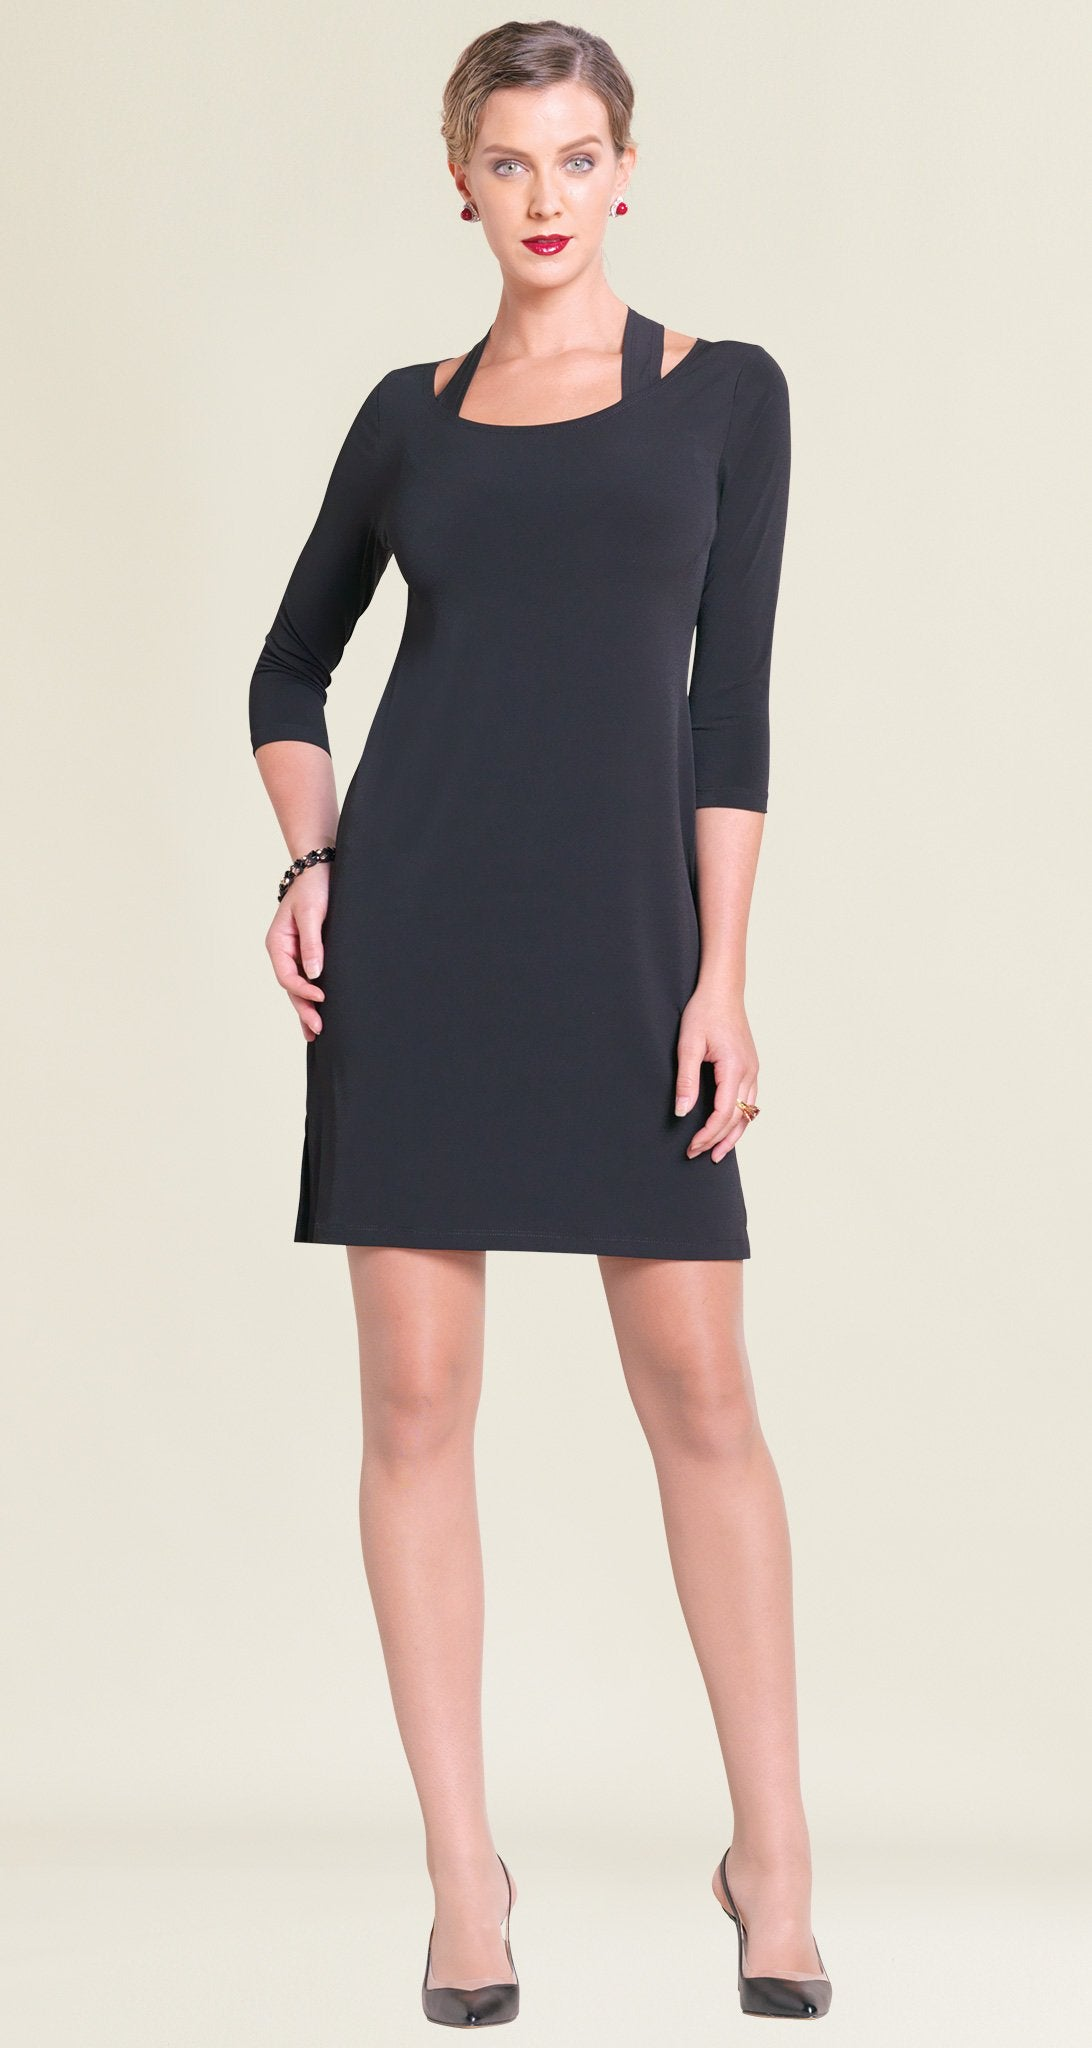 Racer Back Dress - Black - Final Sale